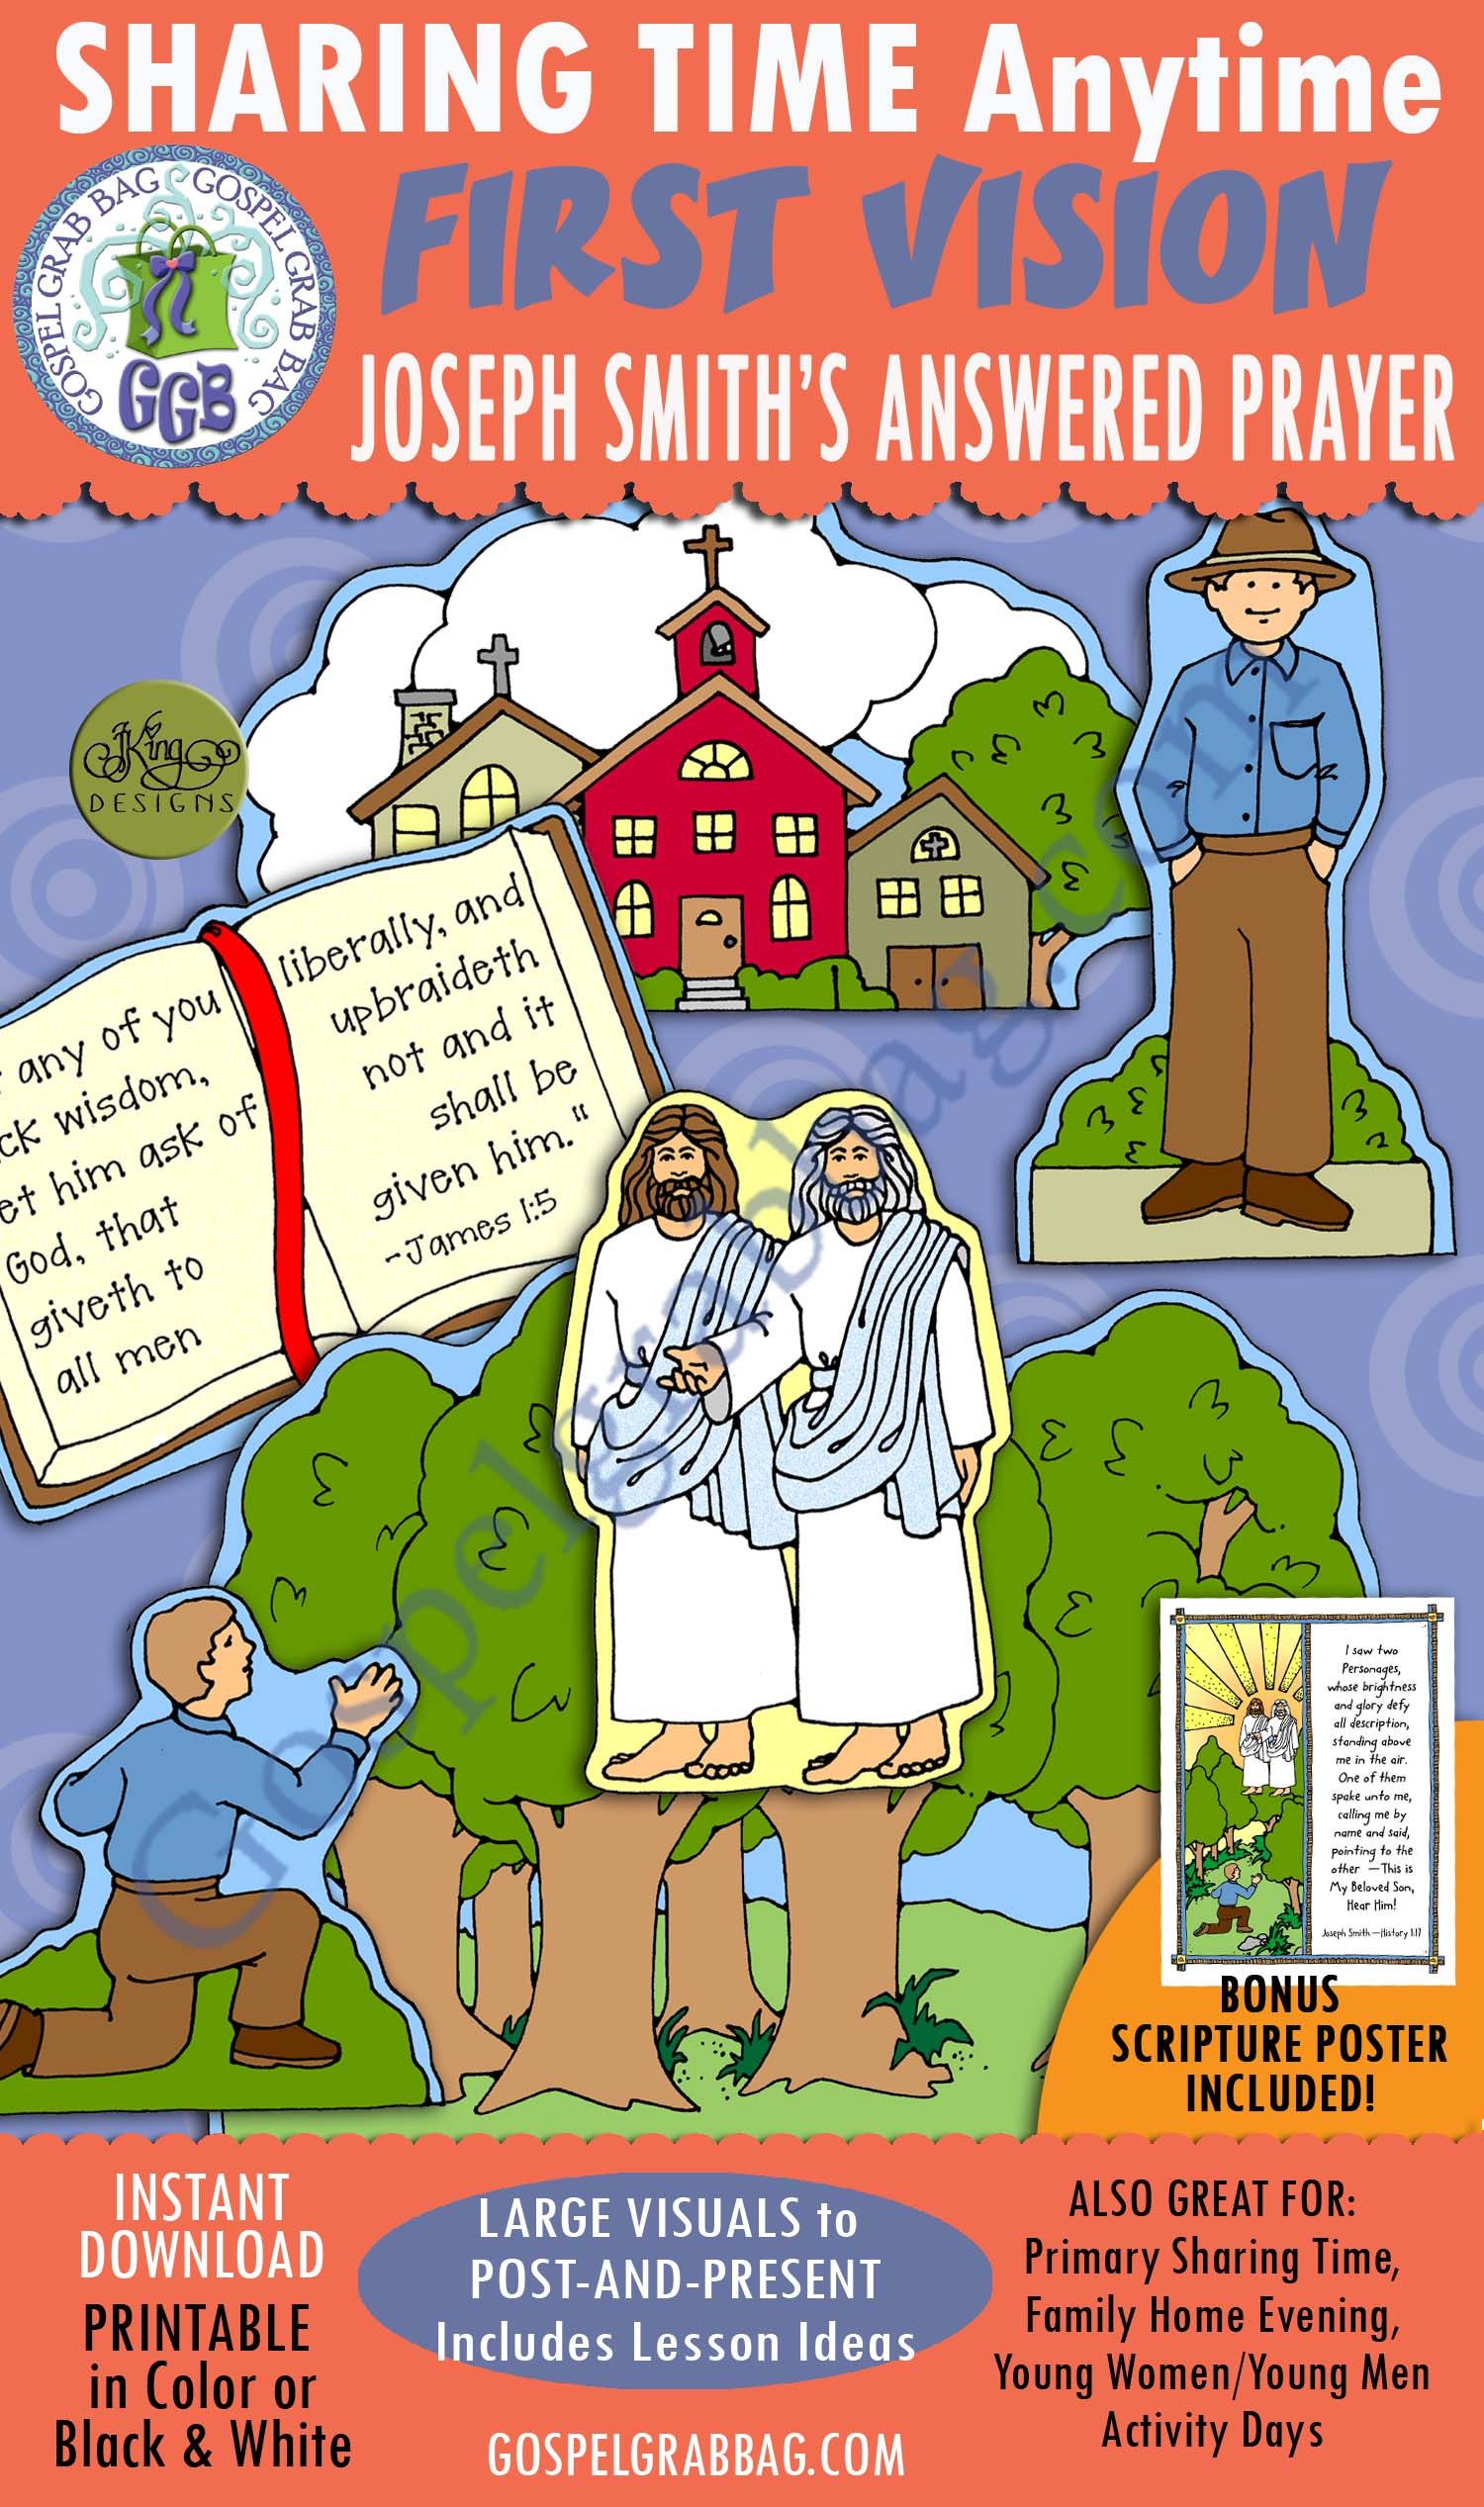 $3.50 FIRST VISION: Joseph Smith's Answered Prayer Activity, and Joseph Smith History 1:17 SCRIPTURE POSTER & CARDS